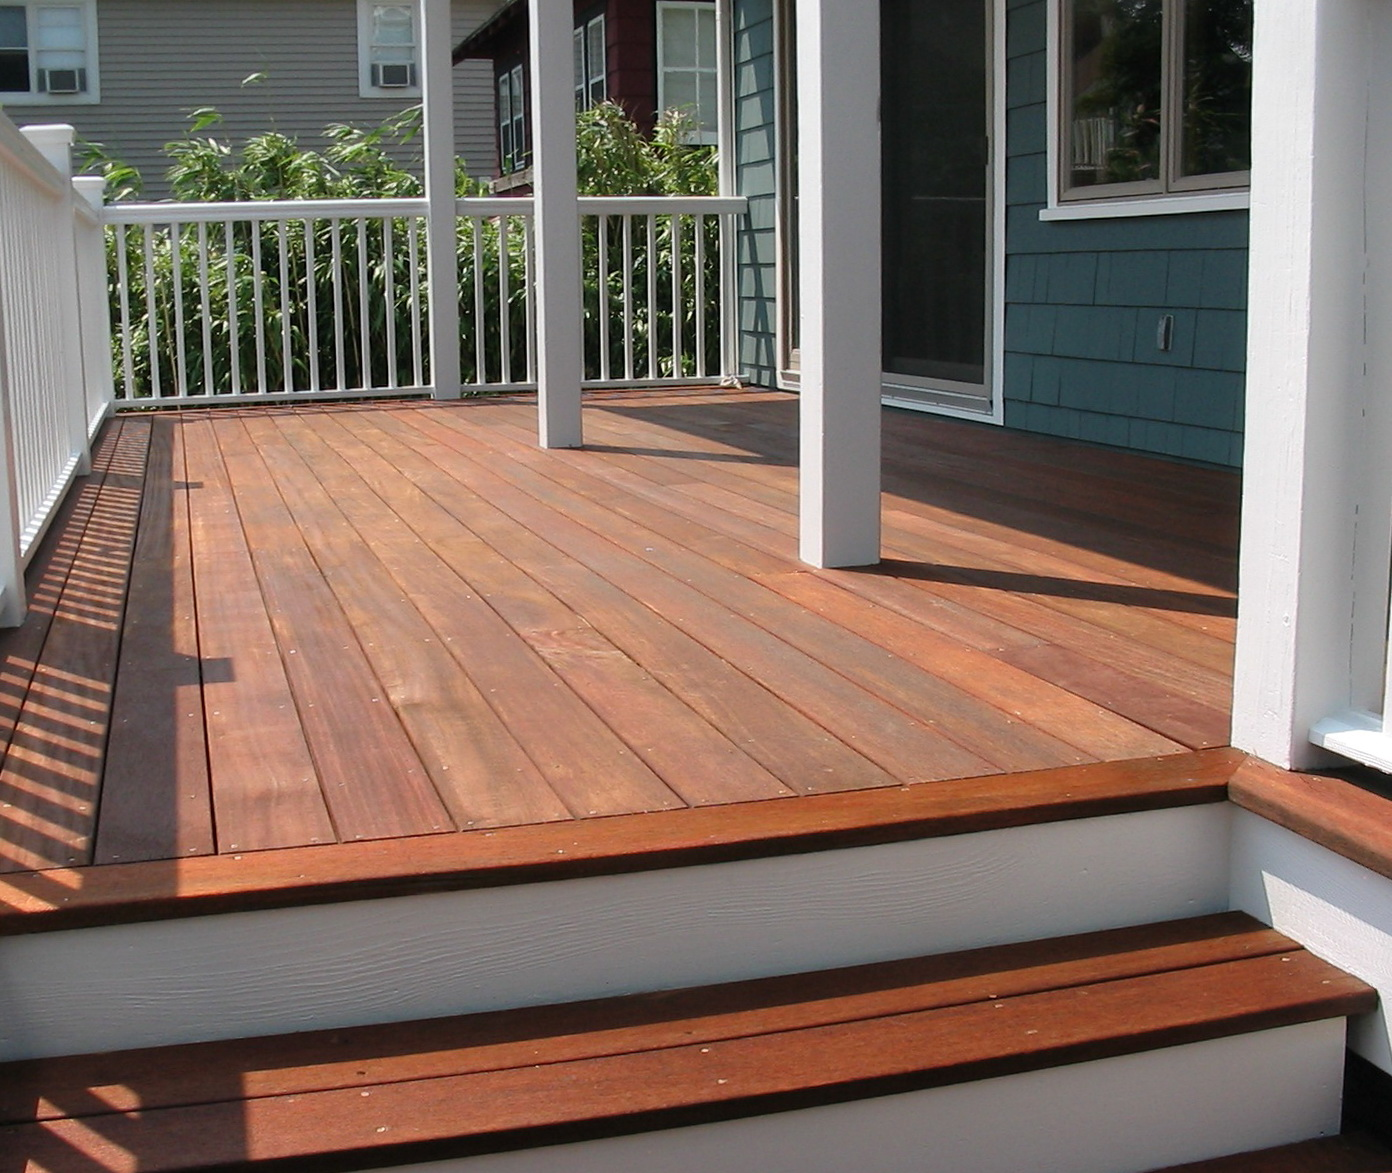 Outdoor Deck Painting Ideas Home Design Ideas